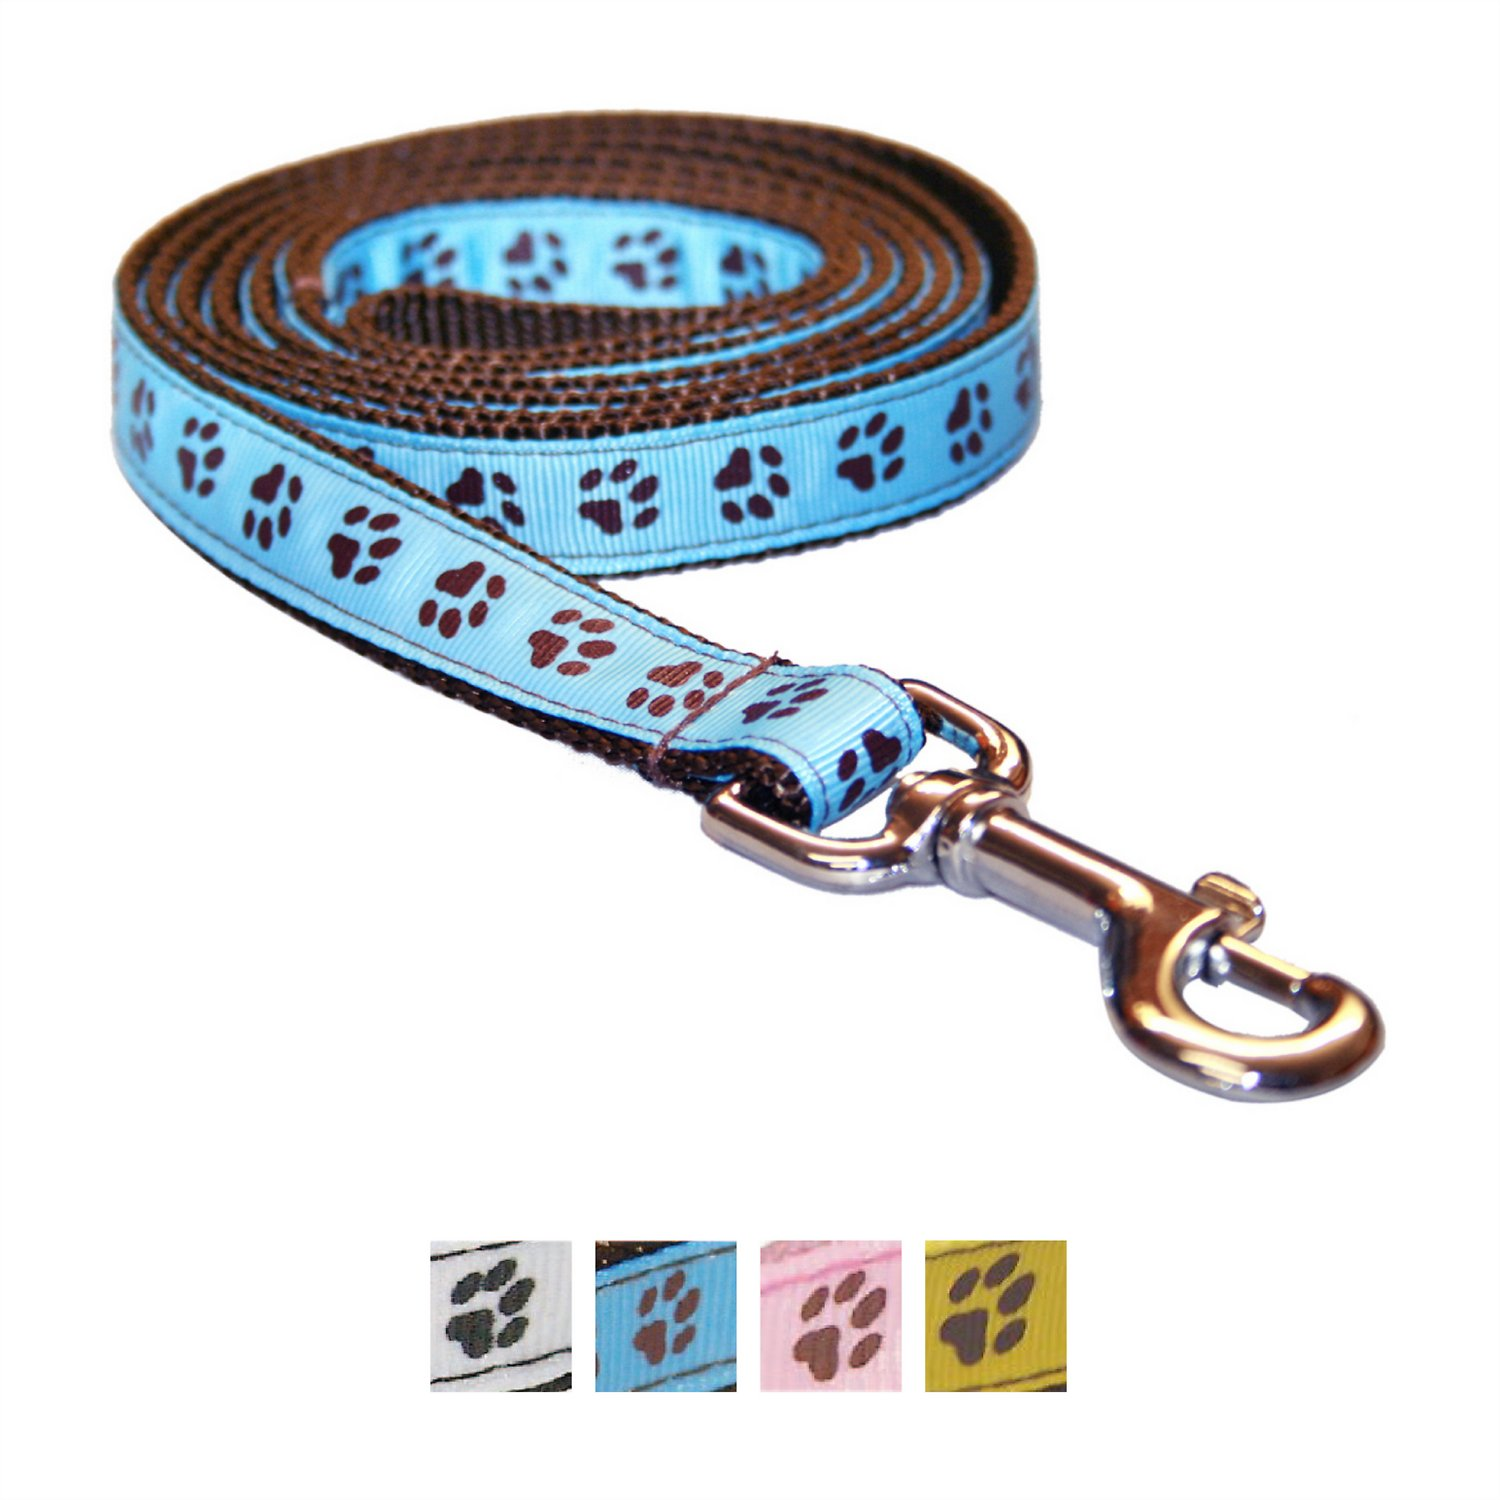 Sassy Dog Wear - Puppy Leash